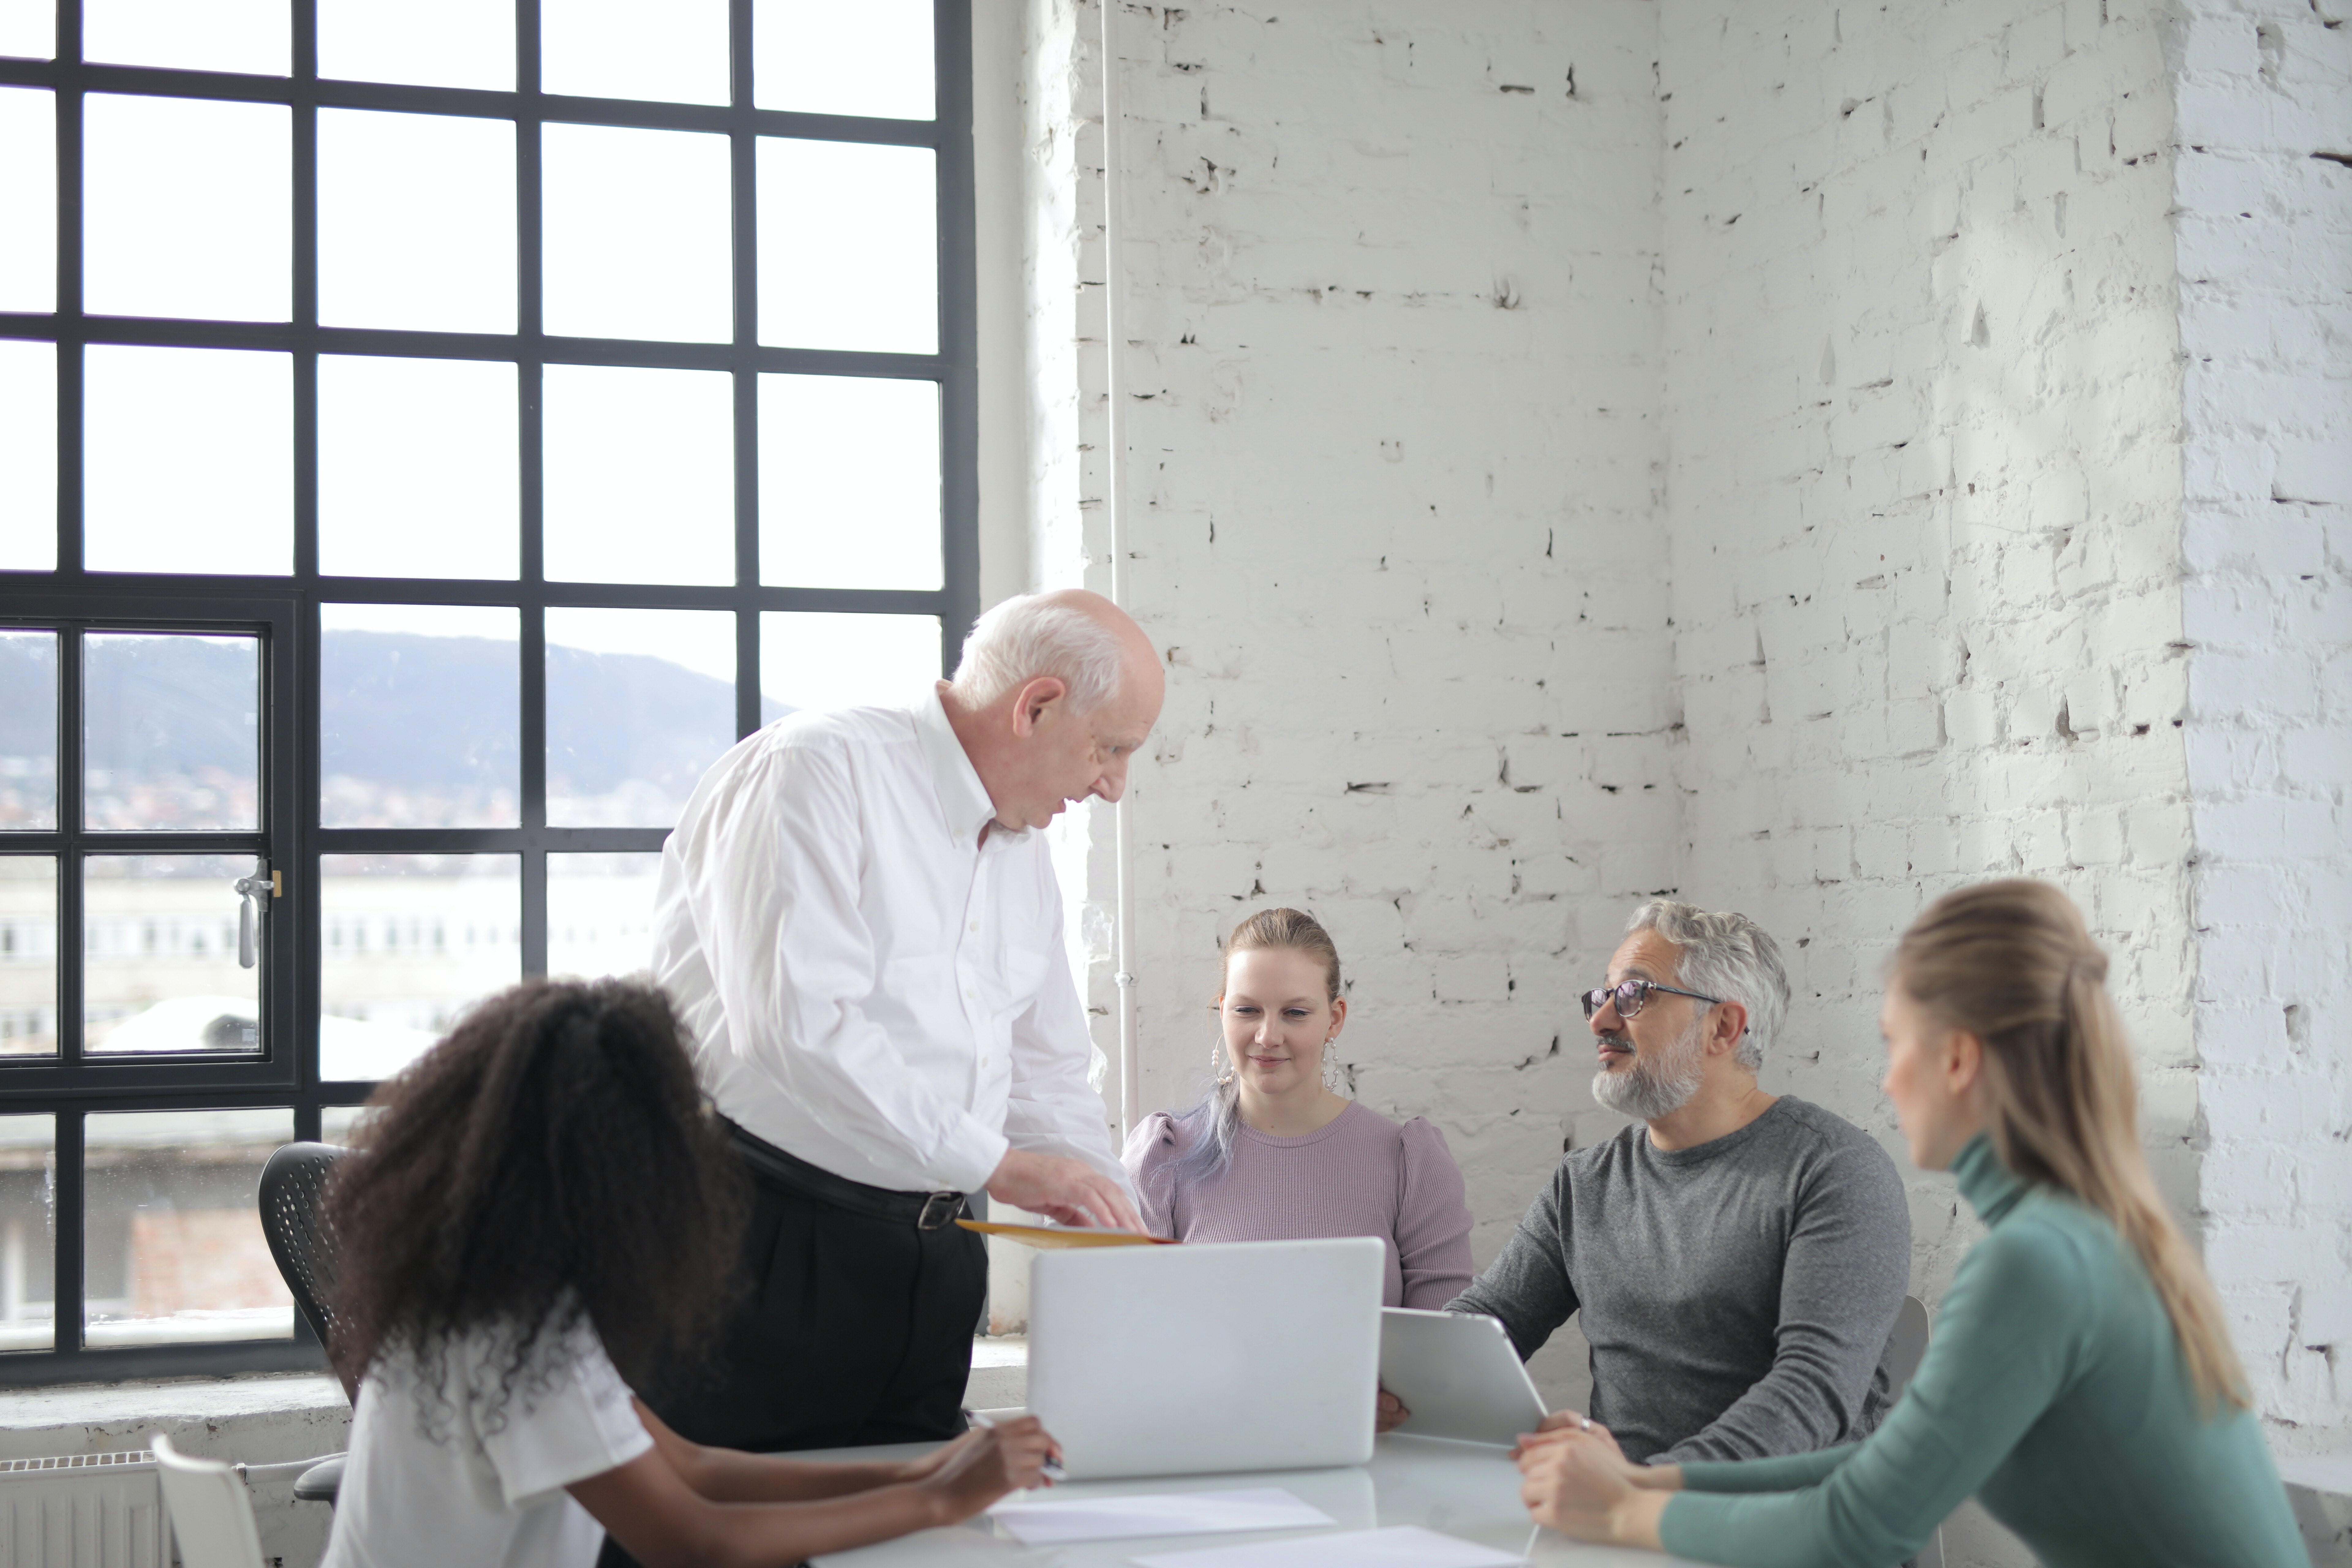 qualities of a project manager includes task allocation